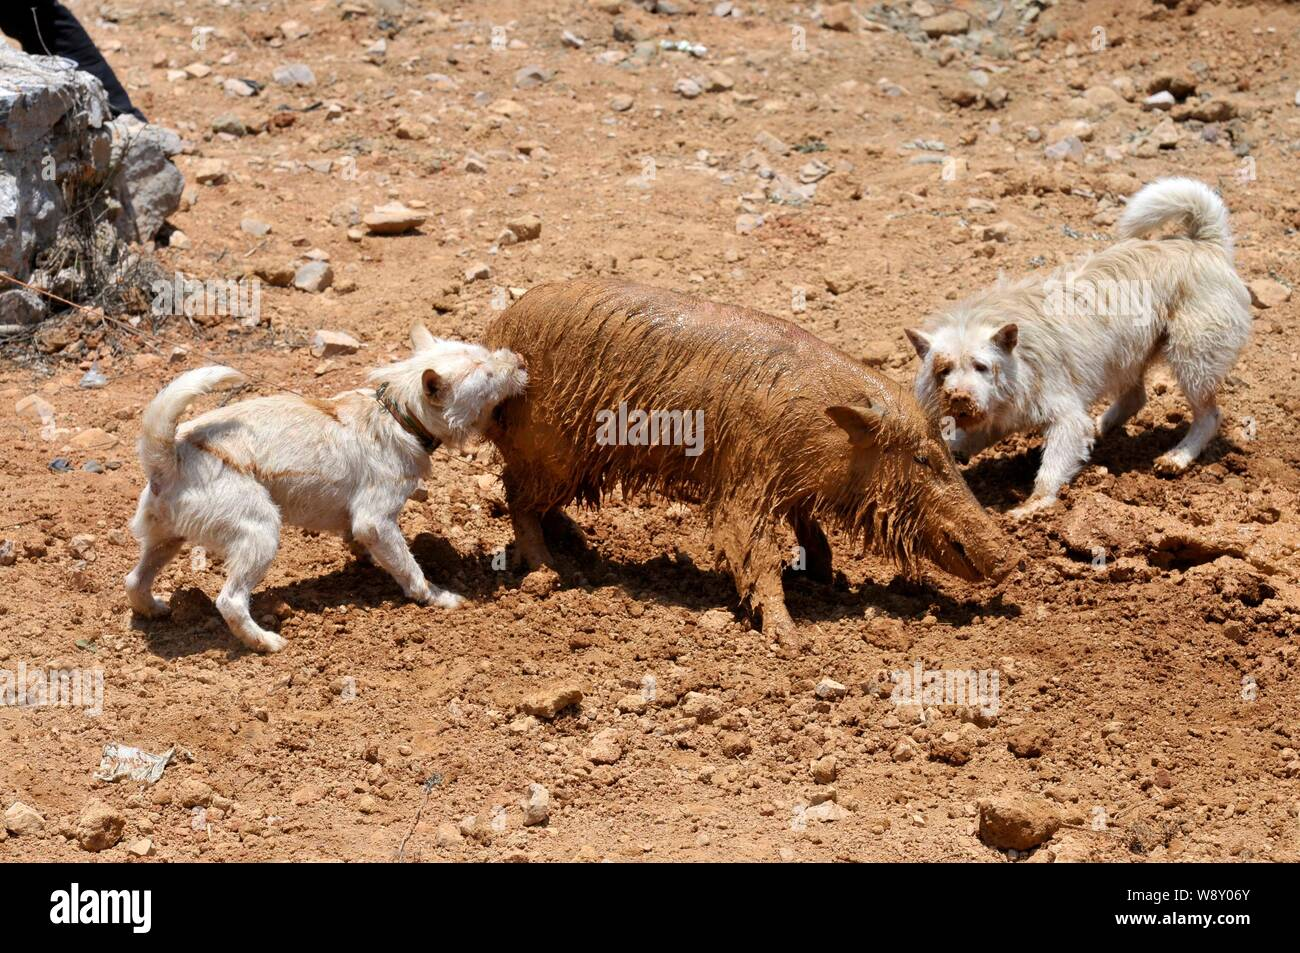 Two Xiasi dogs, left and right, fight a wild boar during a